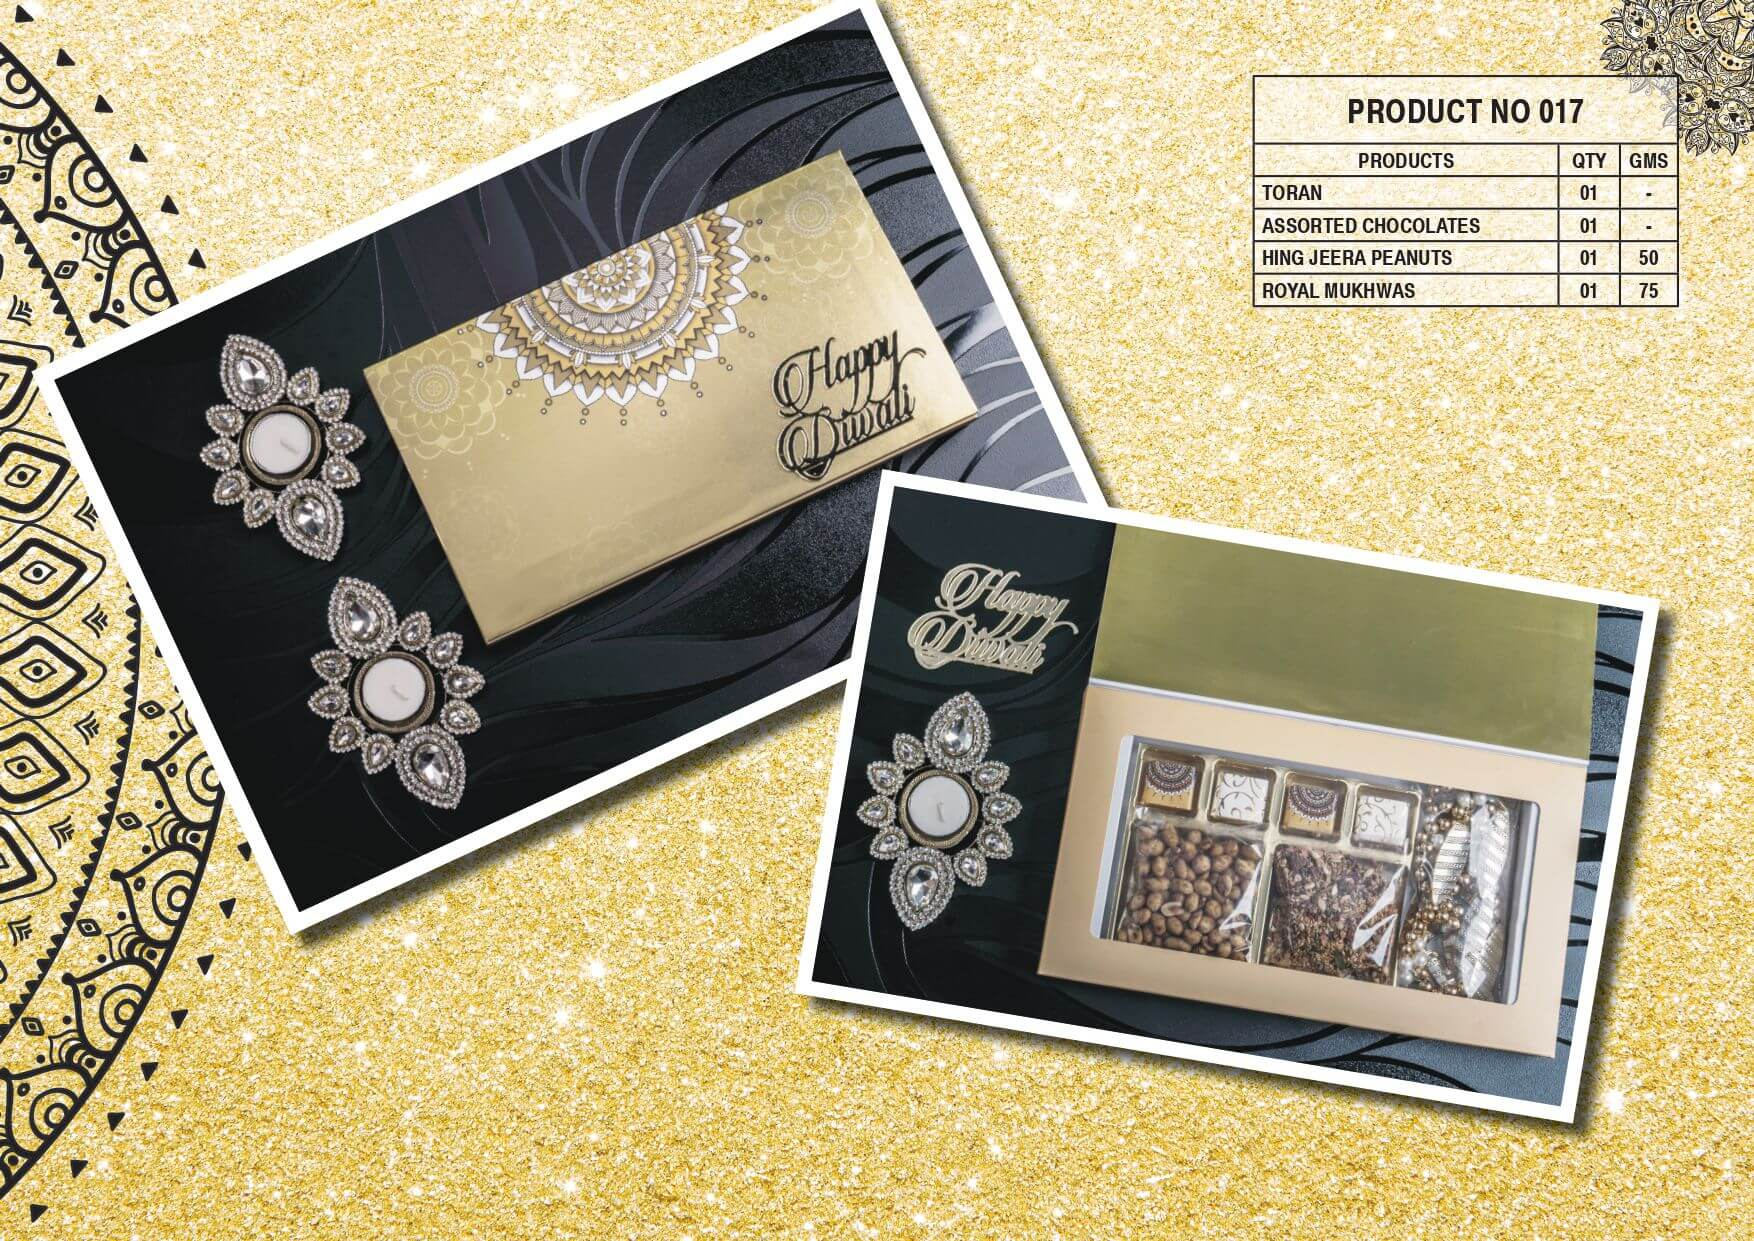 Diwali Gifts Online PRODUCT NO 017